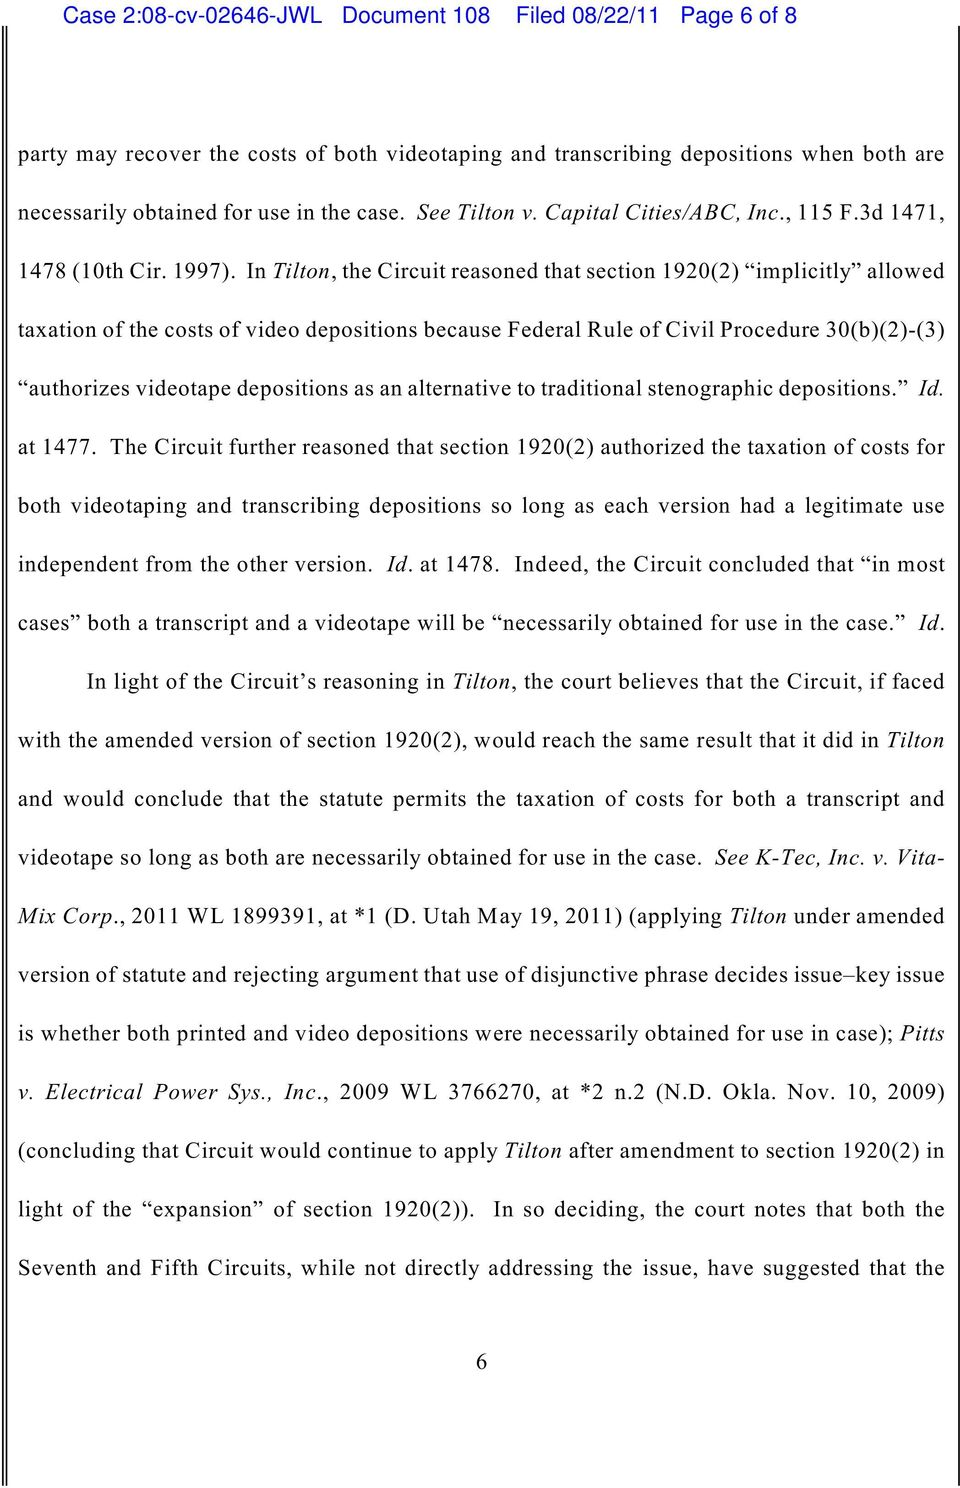 In Tilton, the Circuit reasoned that section 1920(2) implicitly allowed taxation of the costs of video depositions because Federal Rule of Civil Procedure 30(b)(2)-(3) authorizes videotape